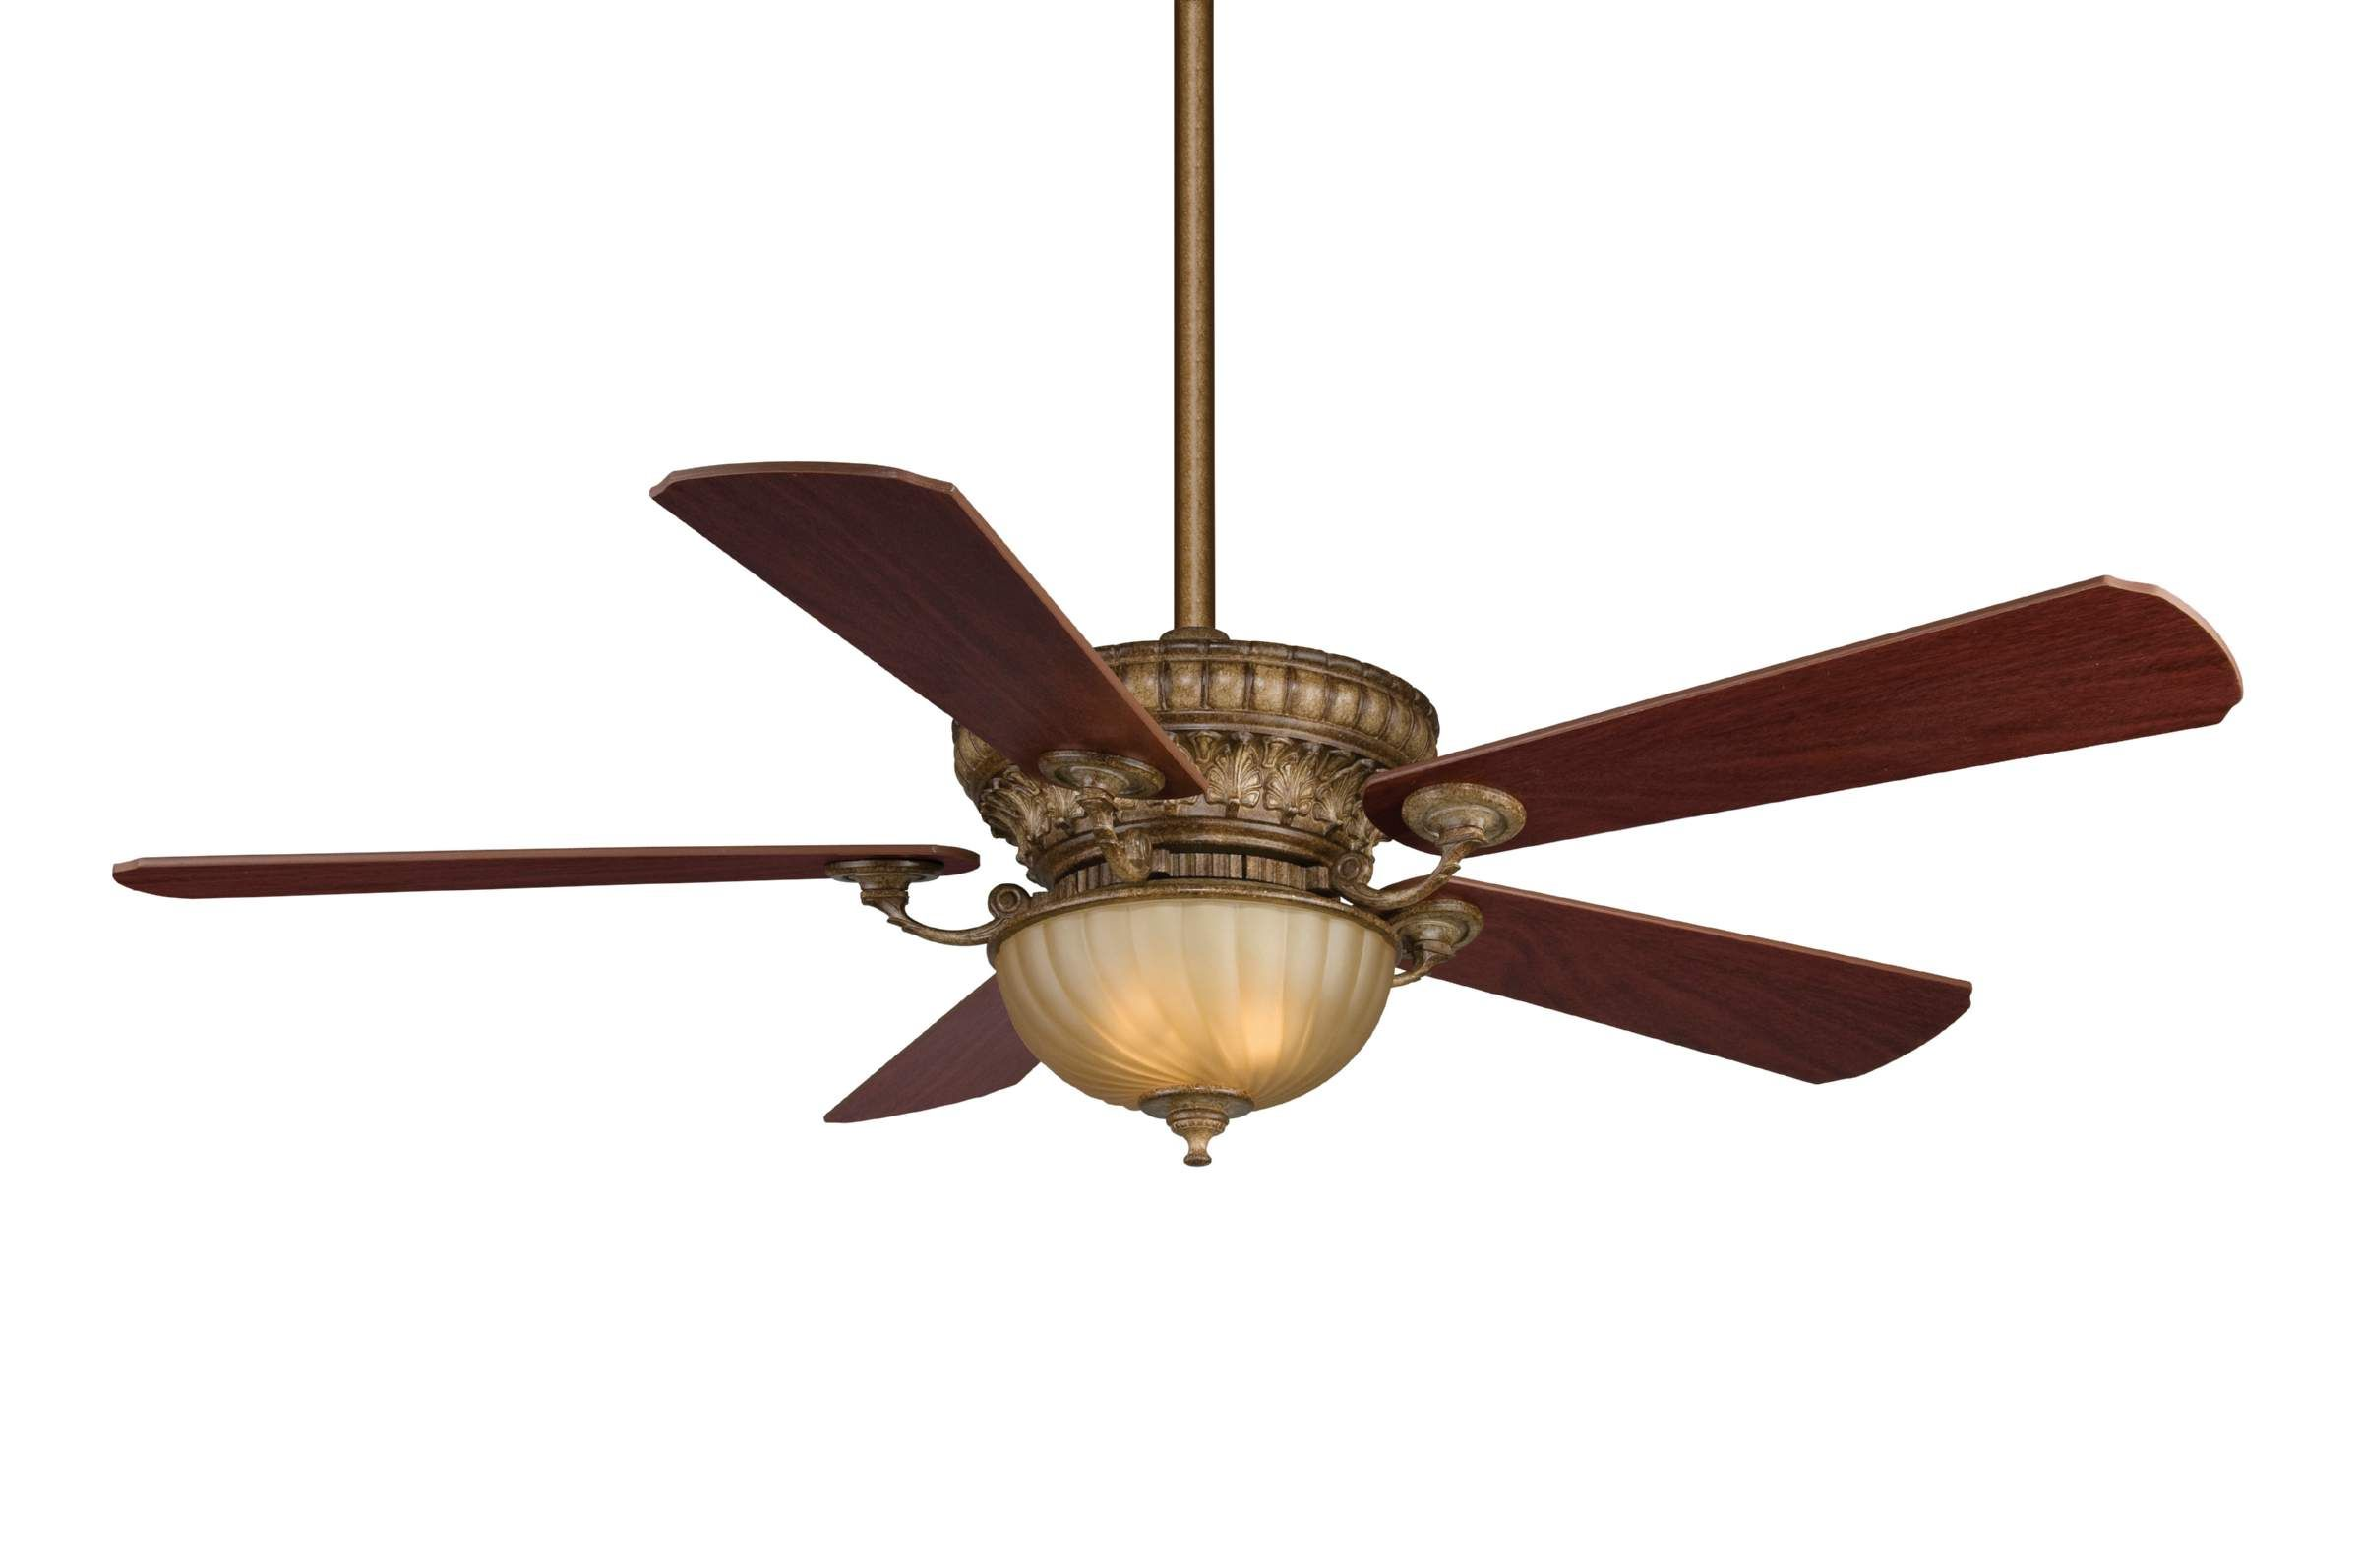 Fanimation Ventana Fp8032sb Airflow Rating 5634 Cfm Cubic Feet Per Minute Ceiling Fan With Remote Ceiling Fan Fanimation Ceiling Fan